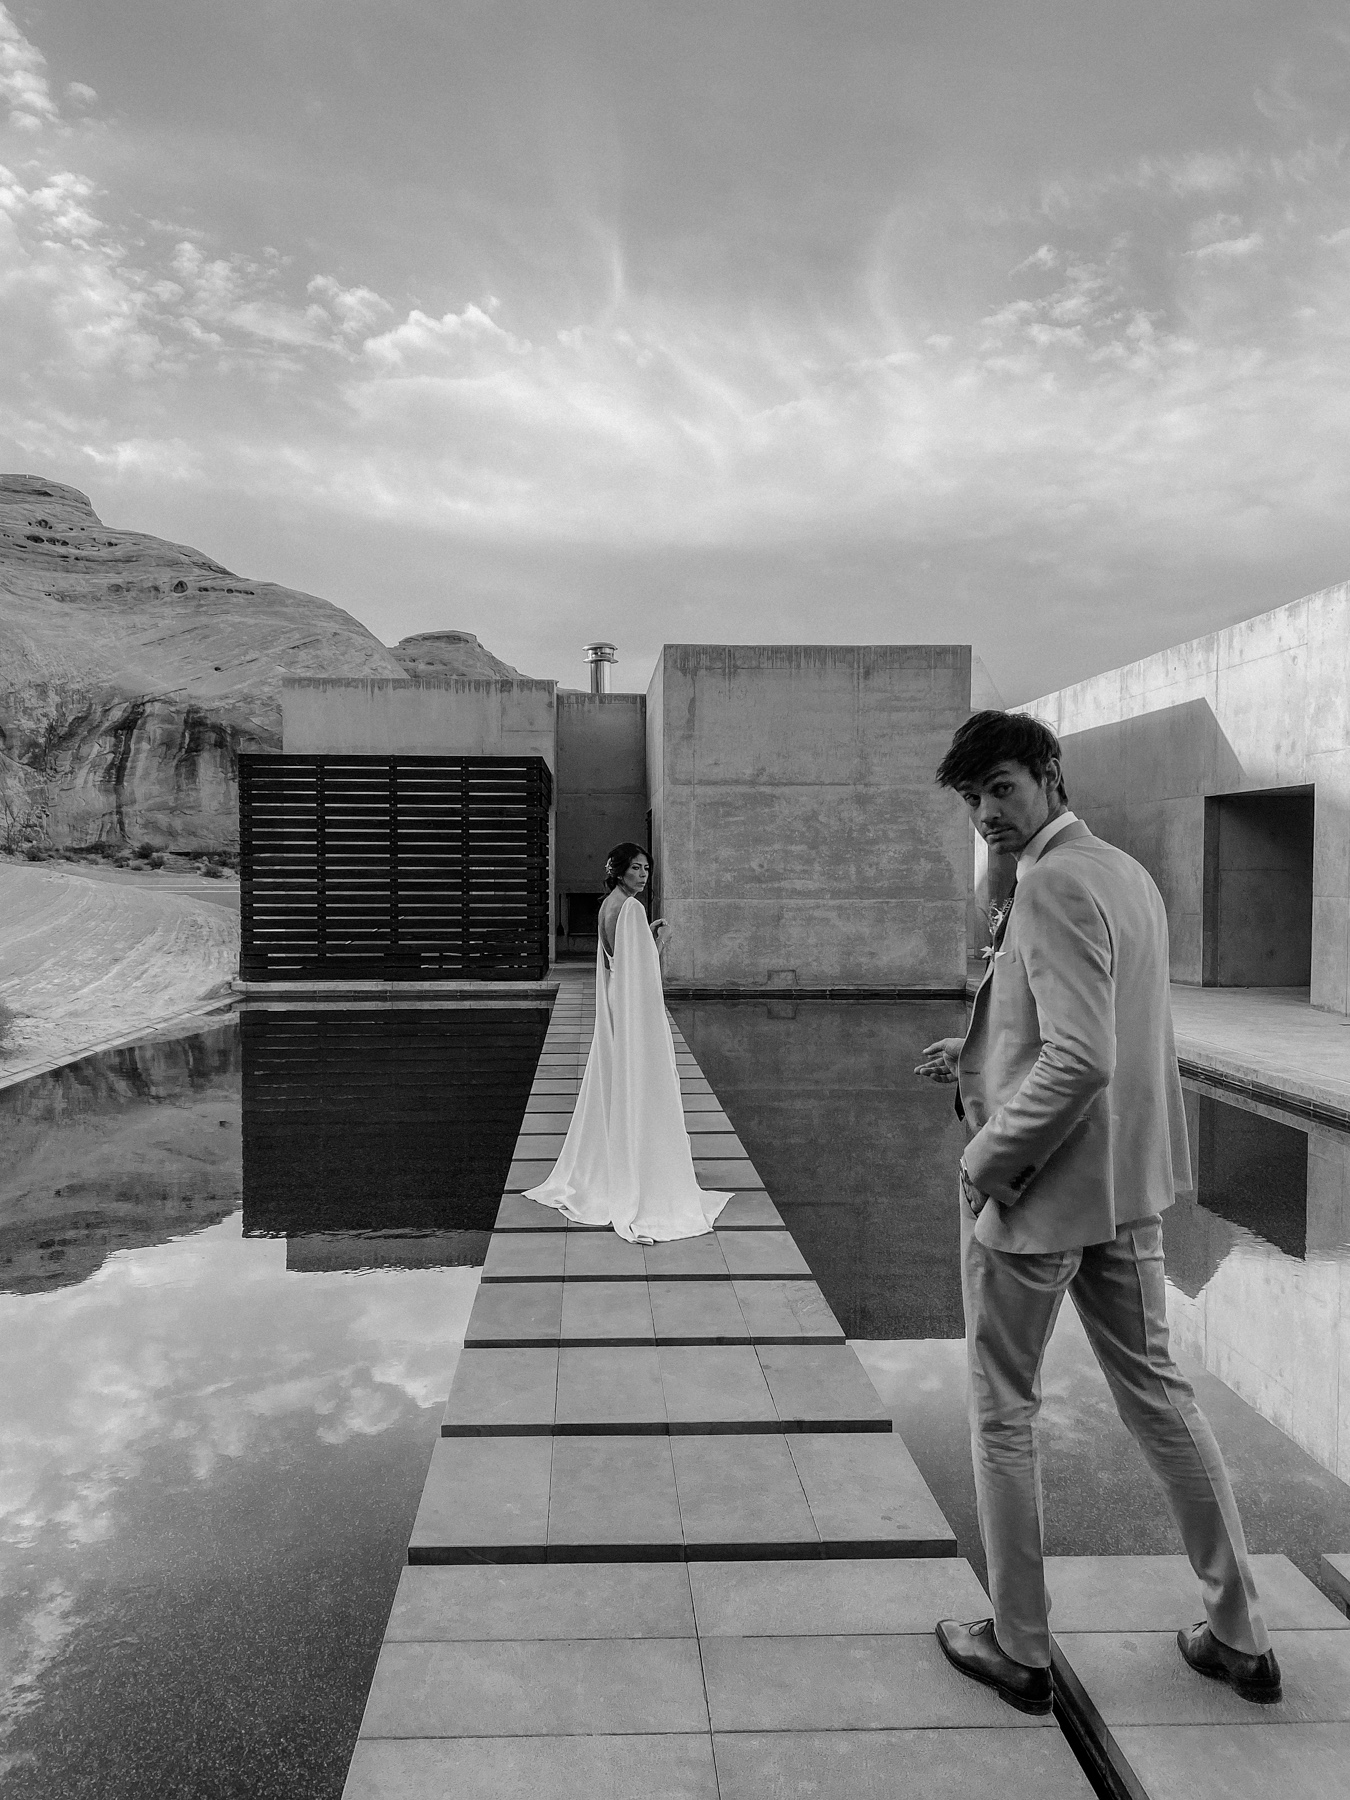 Amangiri Resort Wedding shows bride and groom on famous architecture